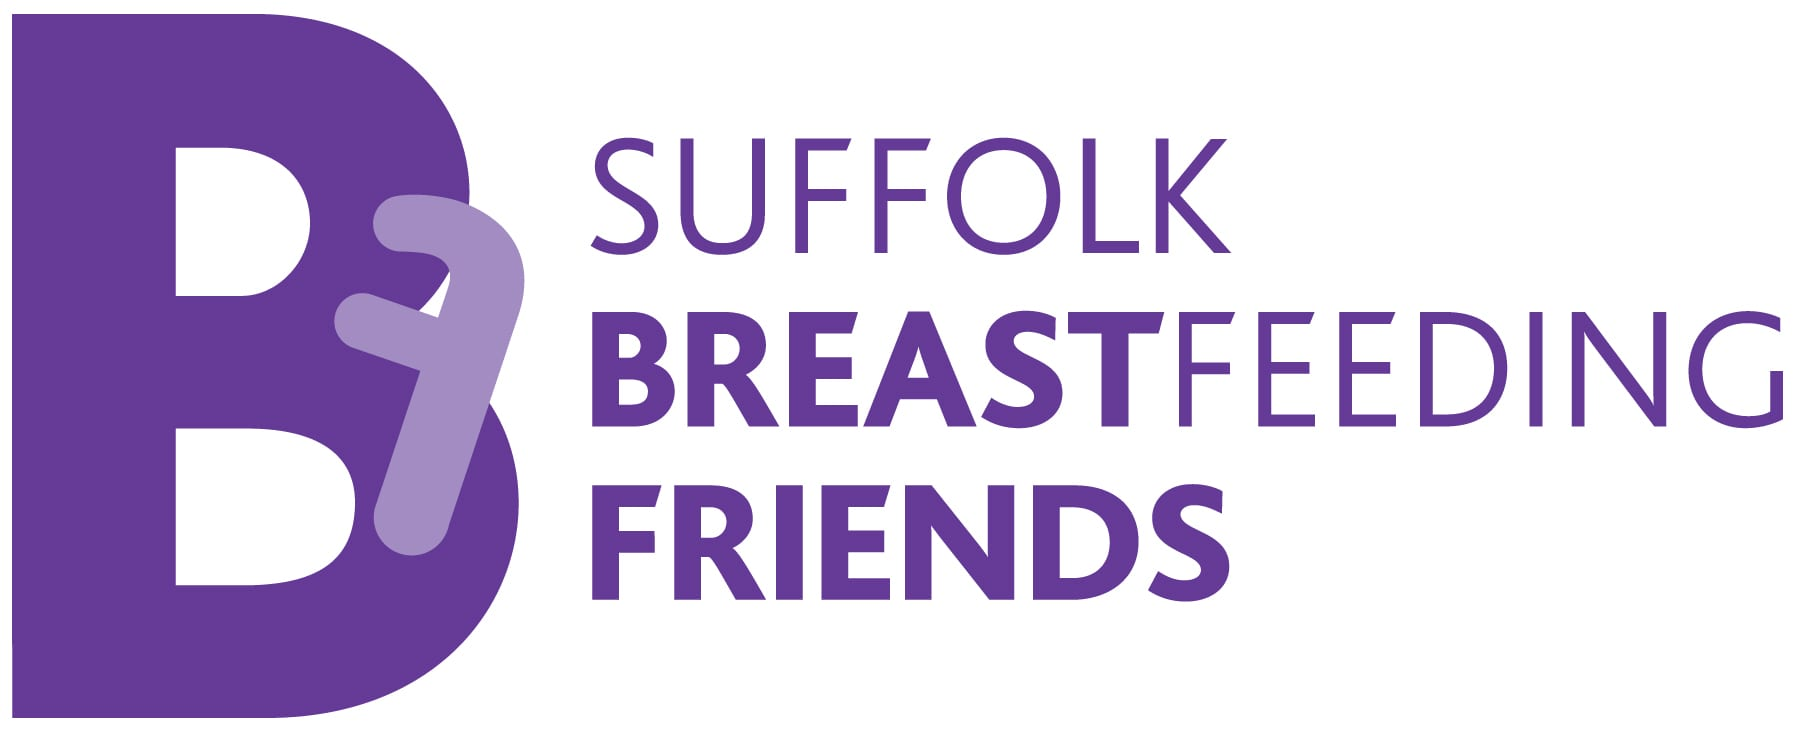 Suffolk Breastfeeding Friends logo purple